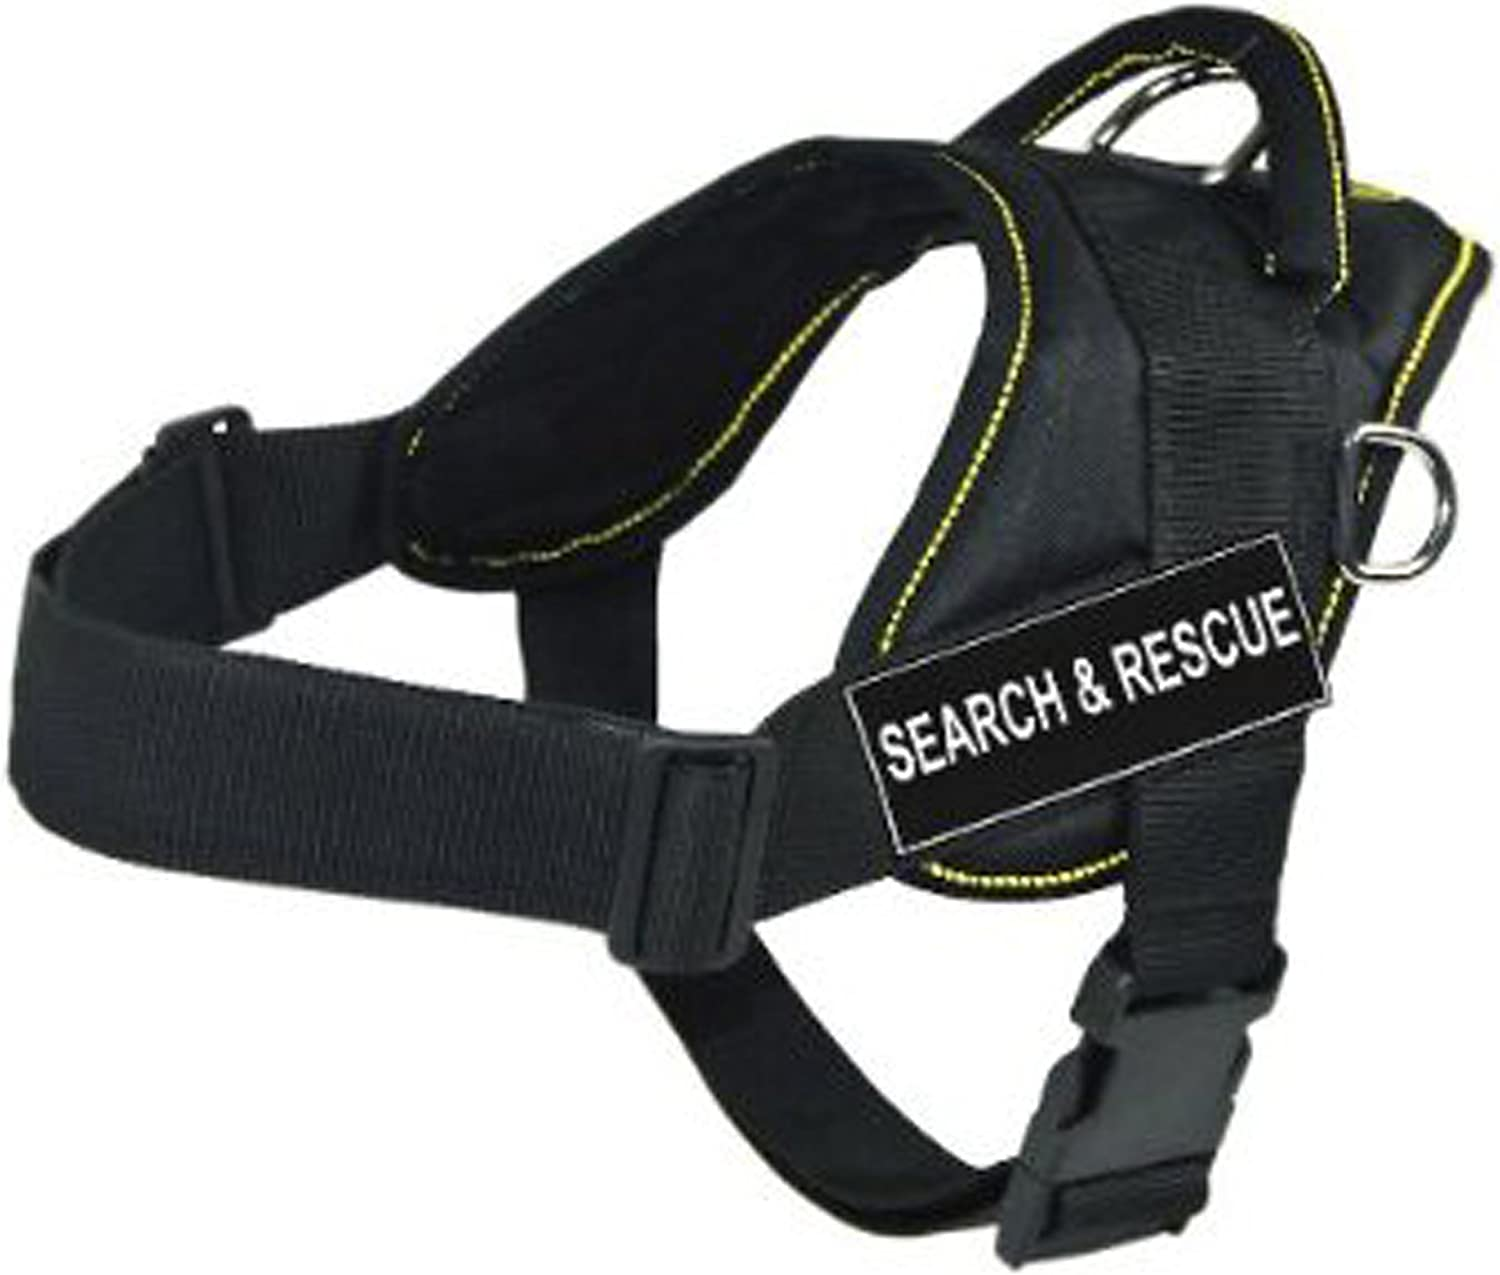 Dean & Tyler DT Fun Works Harness, Search and Rescue, Black With Yellow Trim, Large  Fits Girth Size  32Inch to 42Inch